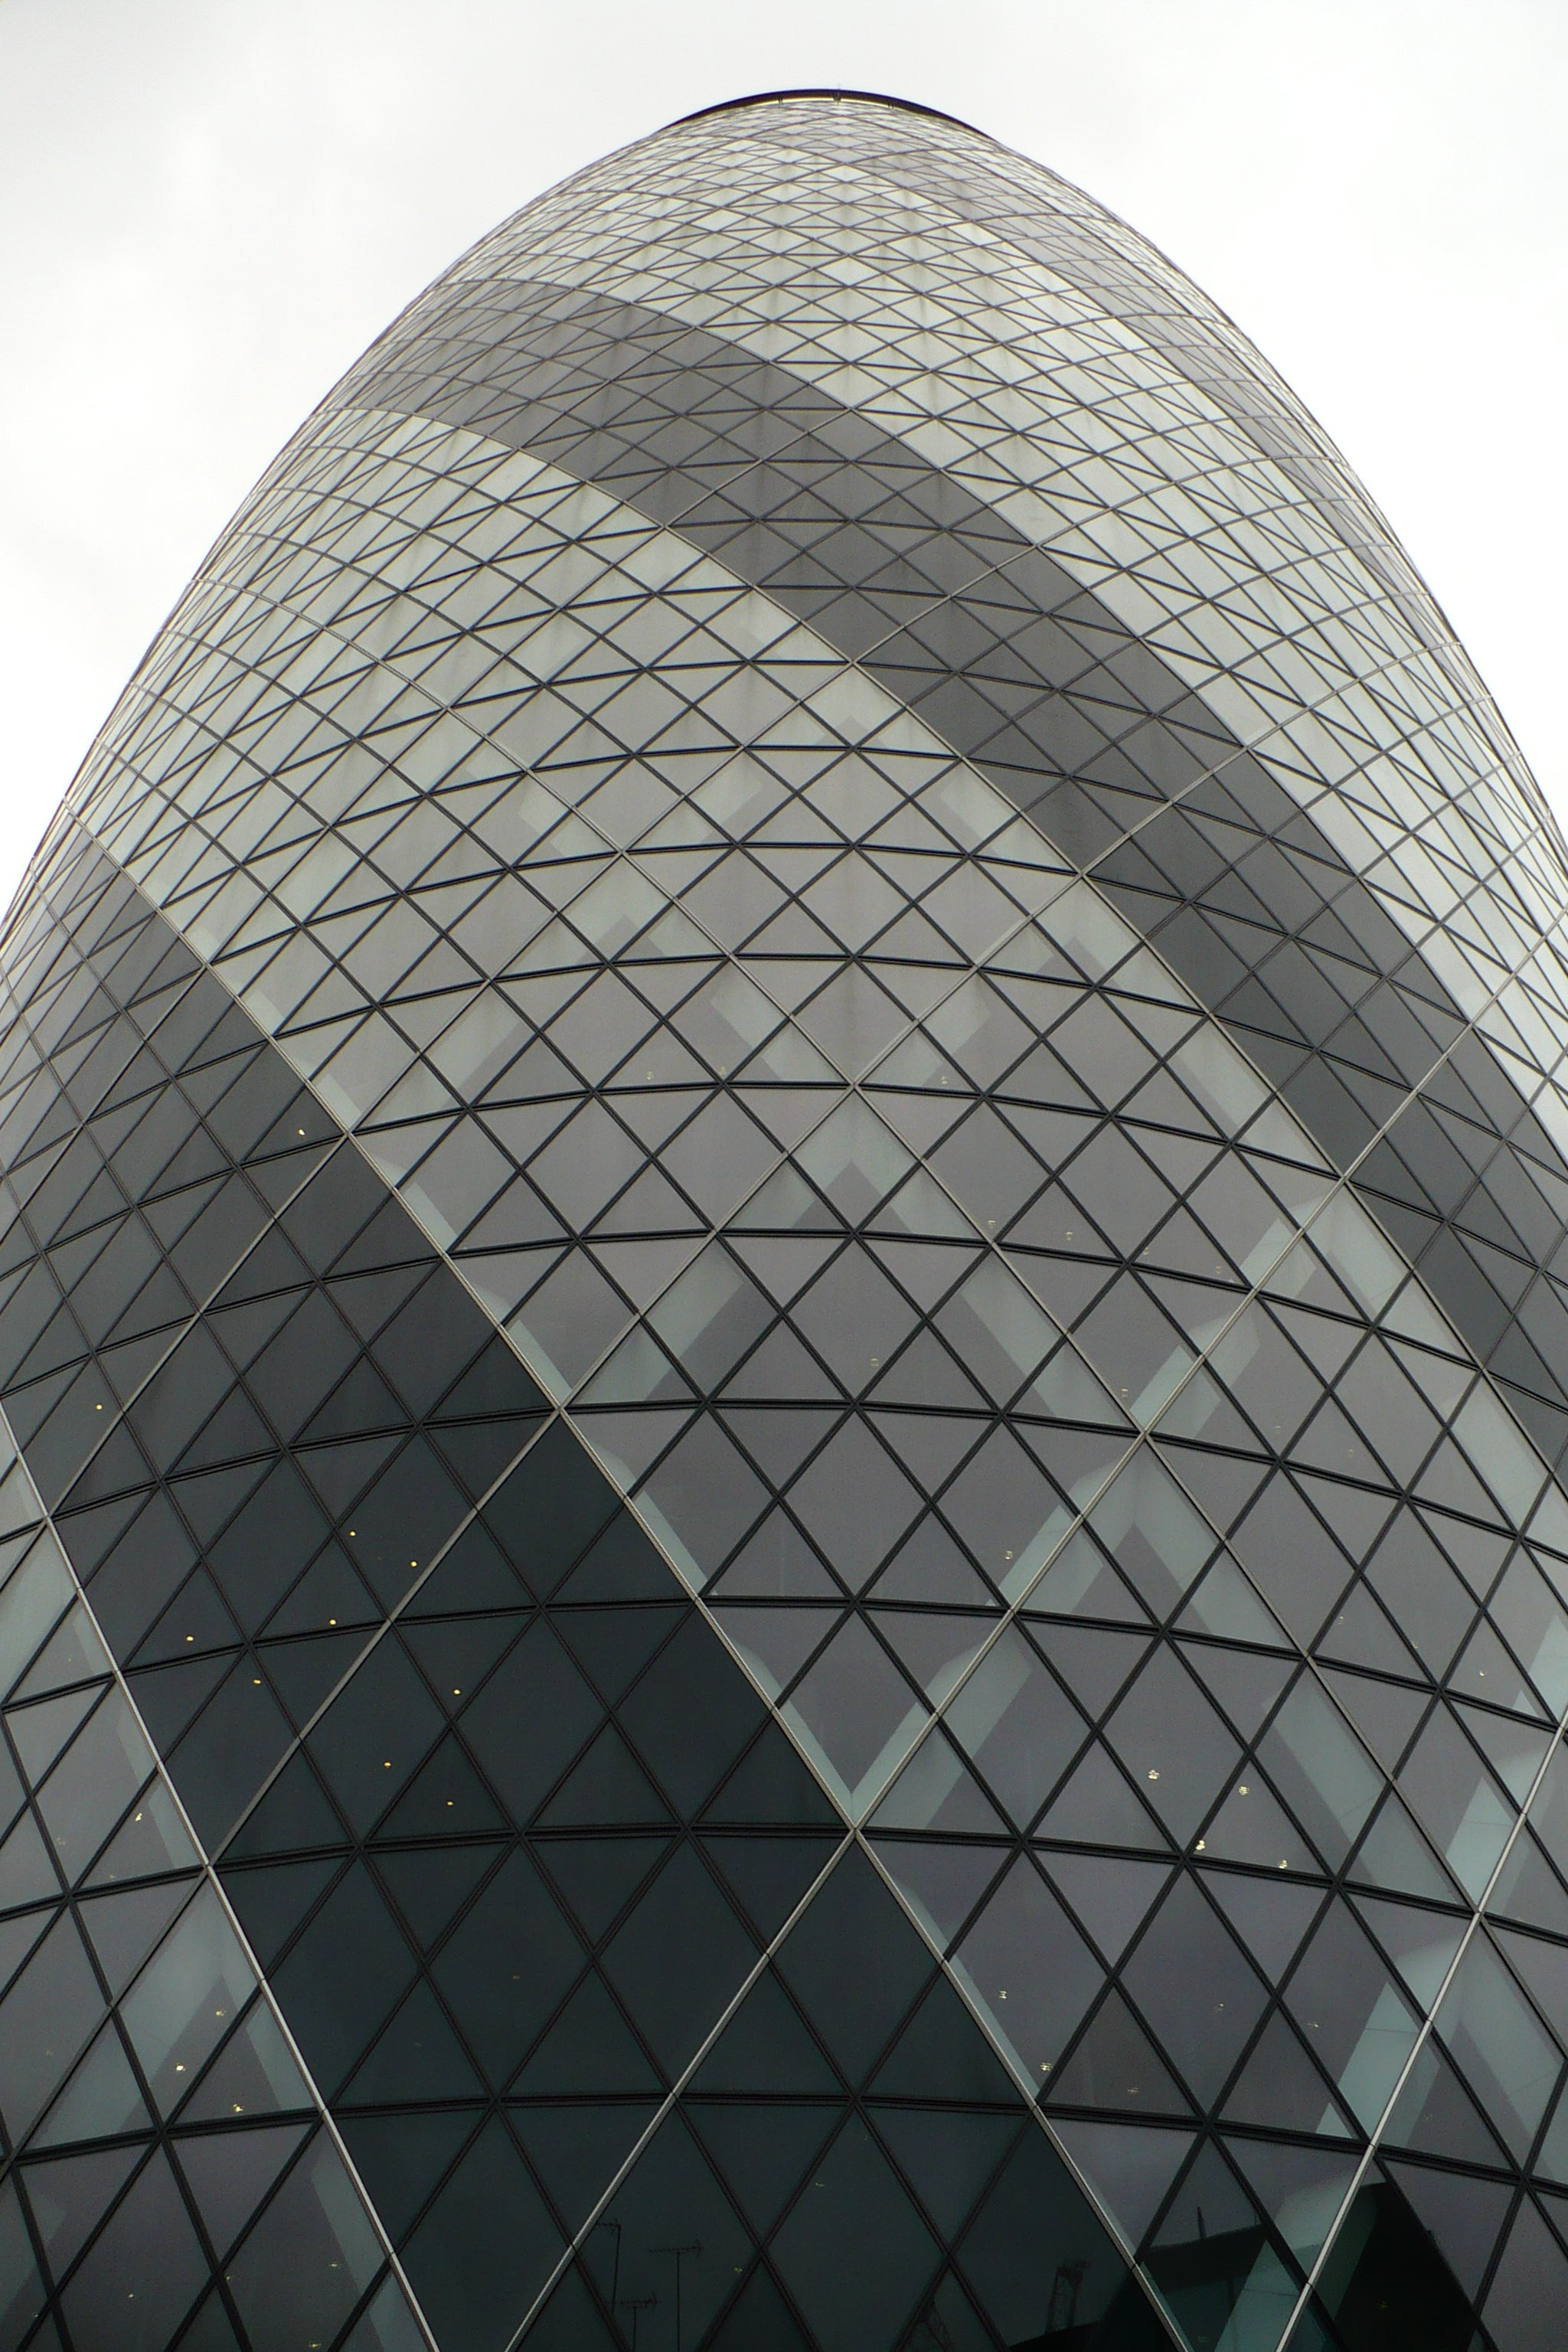 Simetría en Swiss Re Tower - Torre Gherkin